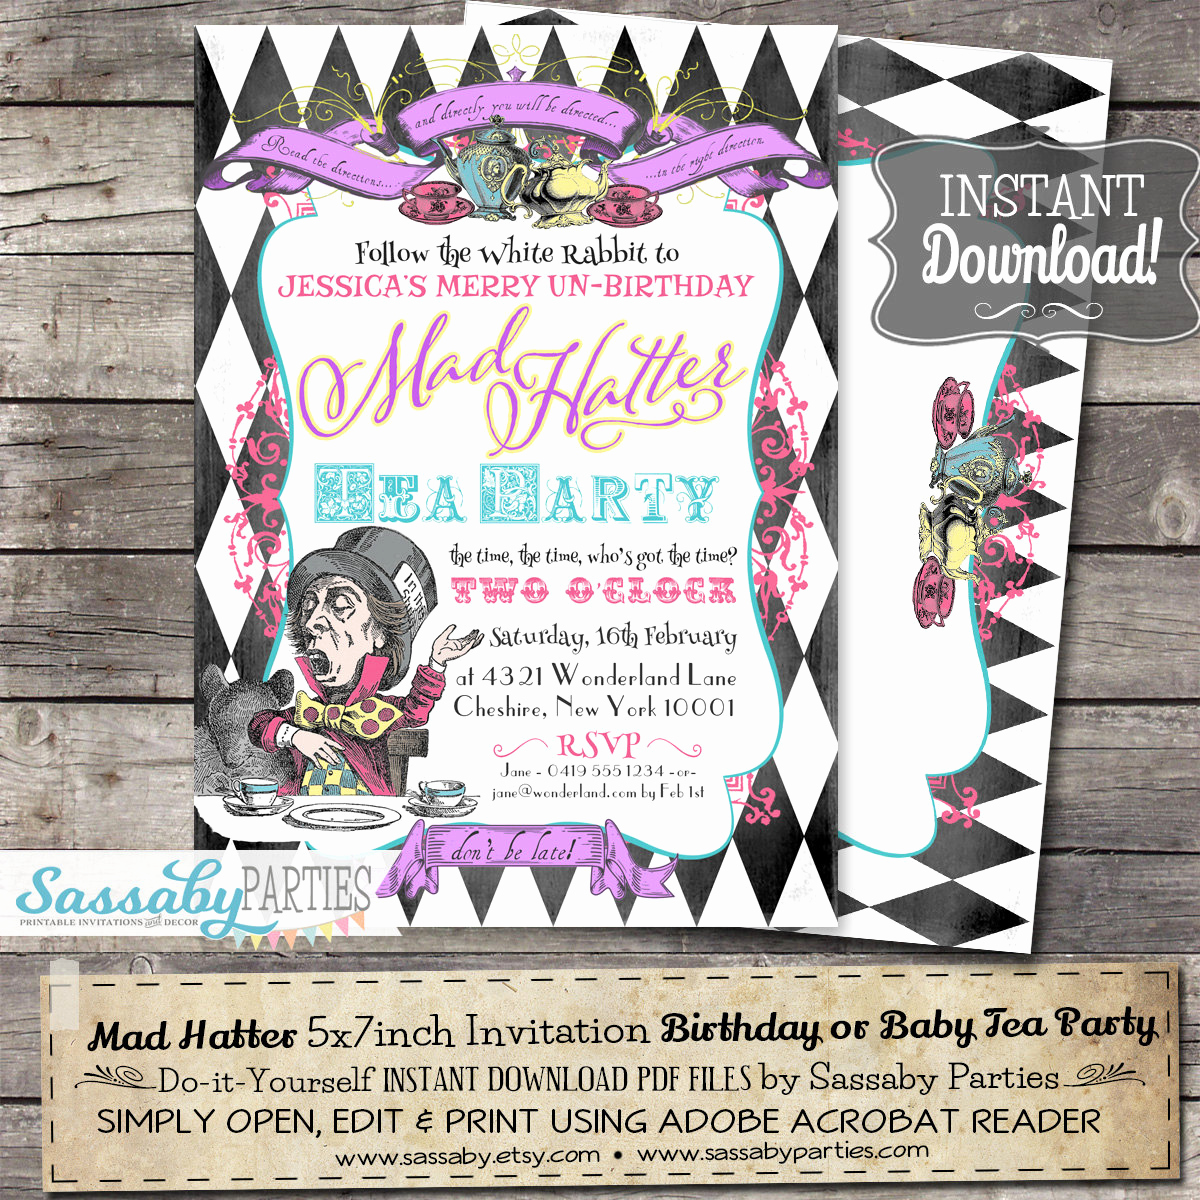 Mad Hatter Invitation Template Luxury Mad Hatter Tea Party Invitation Instant Download